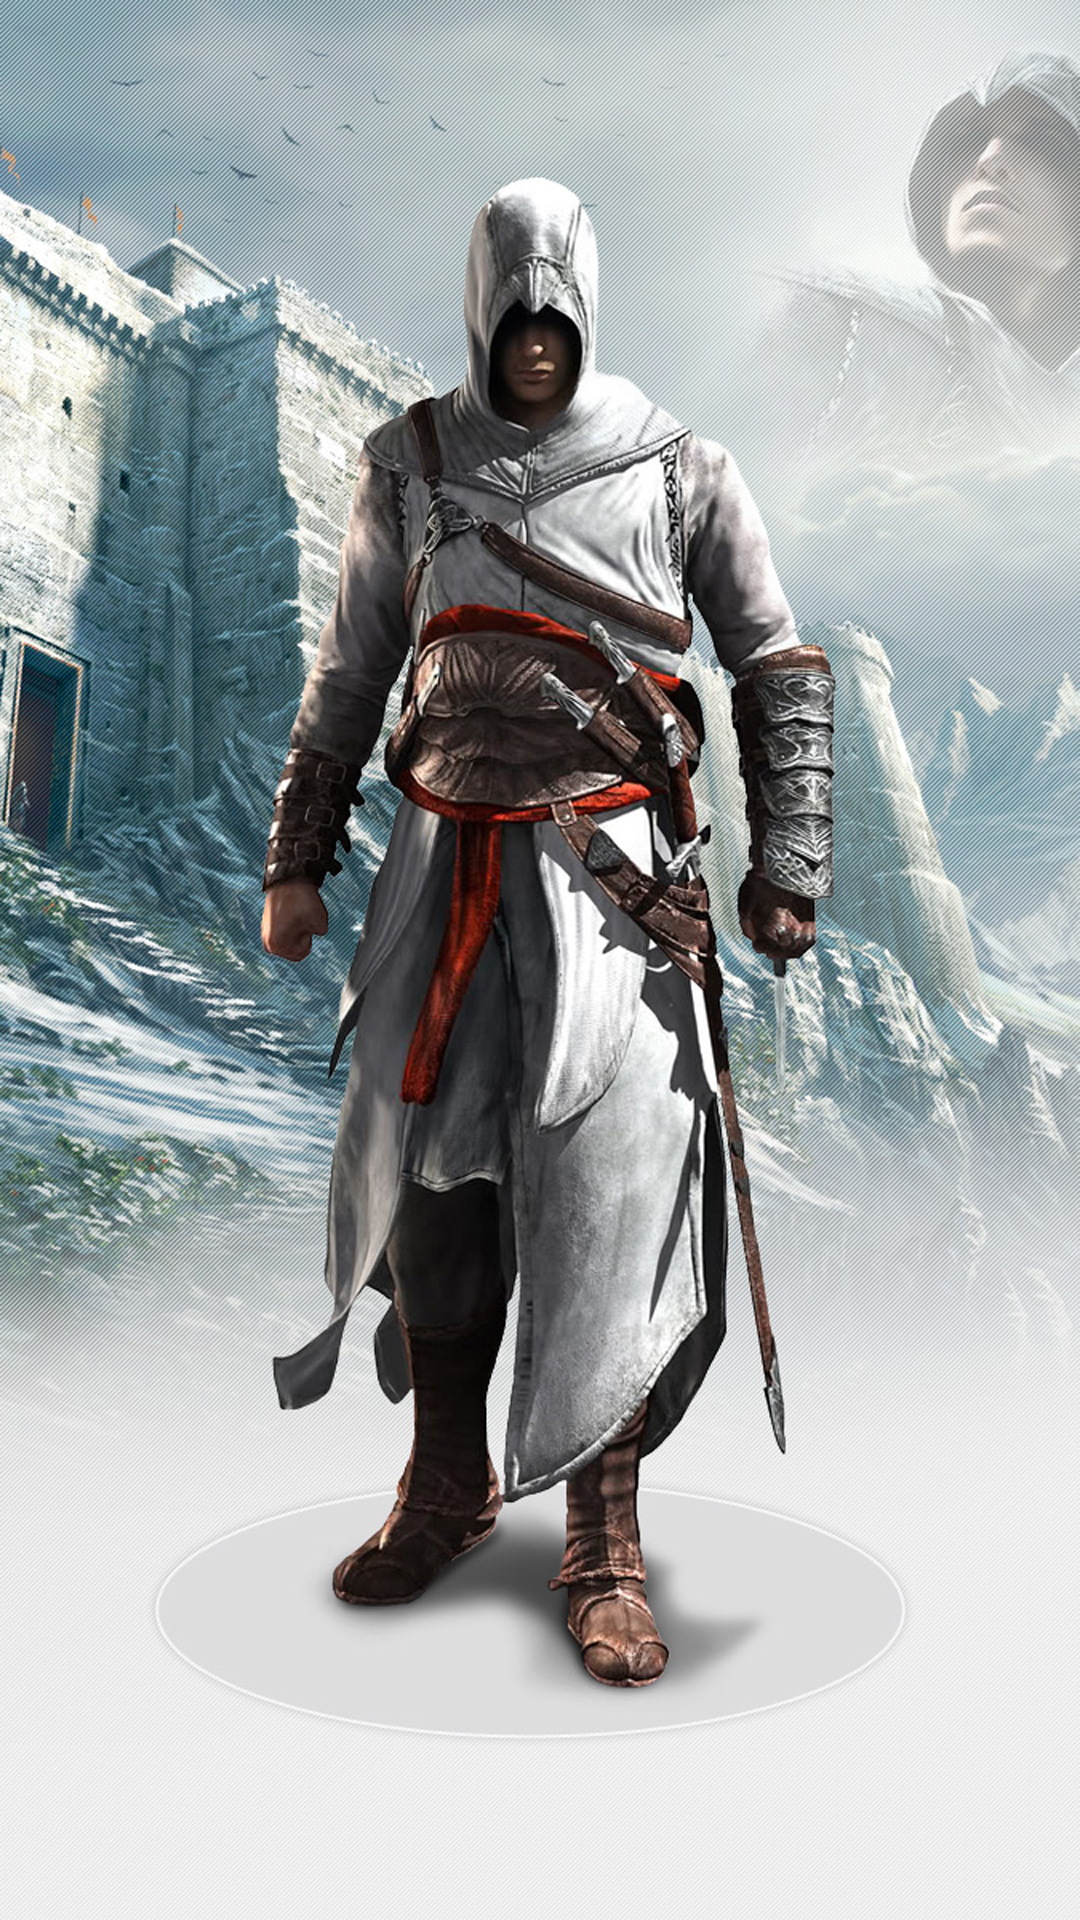 Assassins creed htc one wallpaper